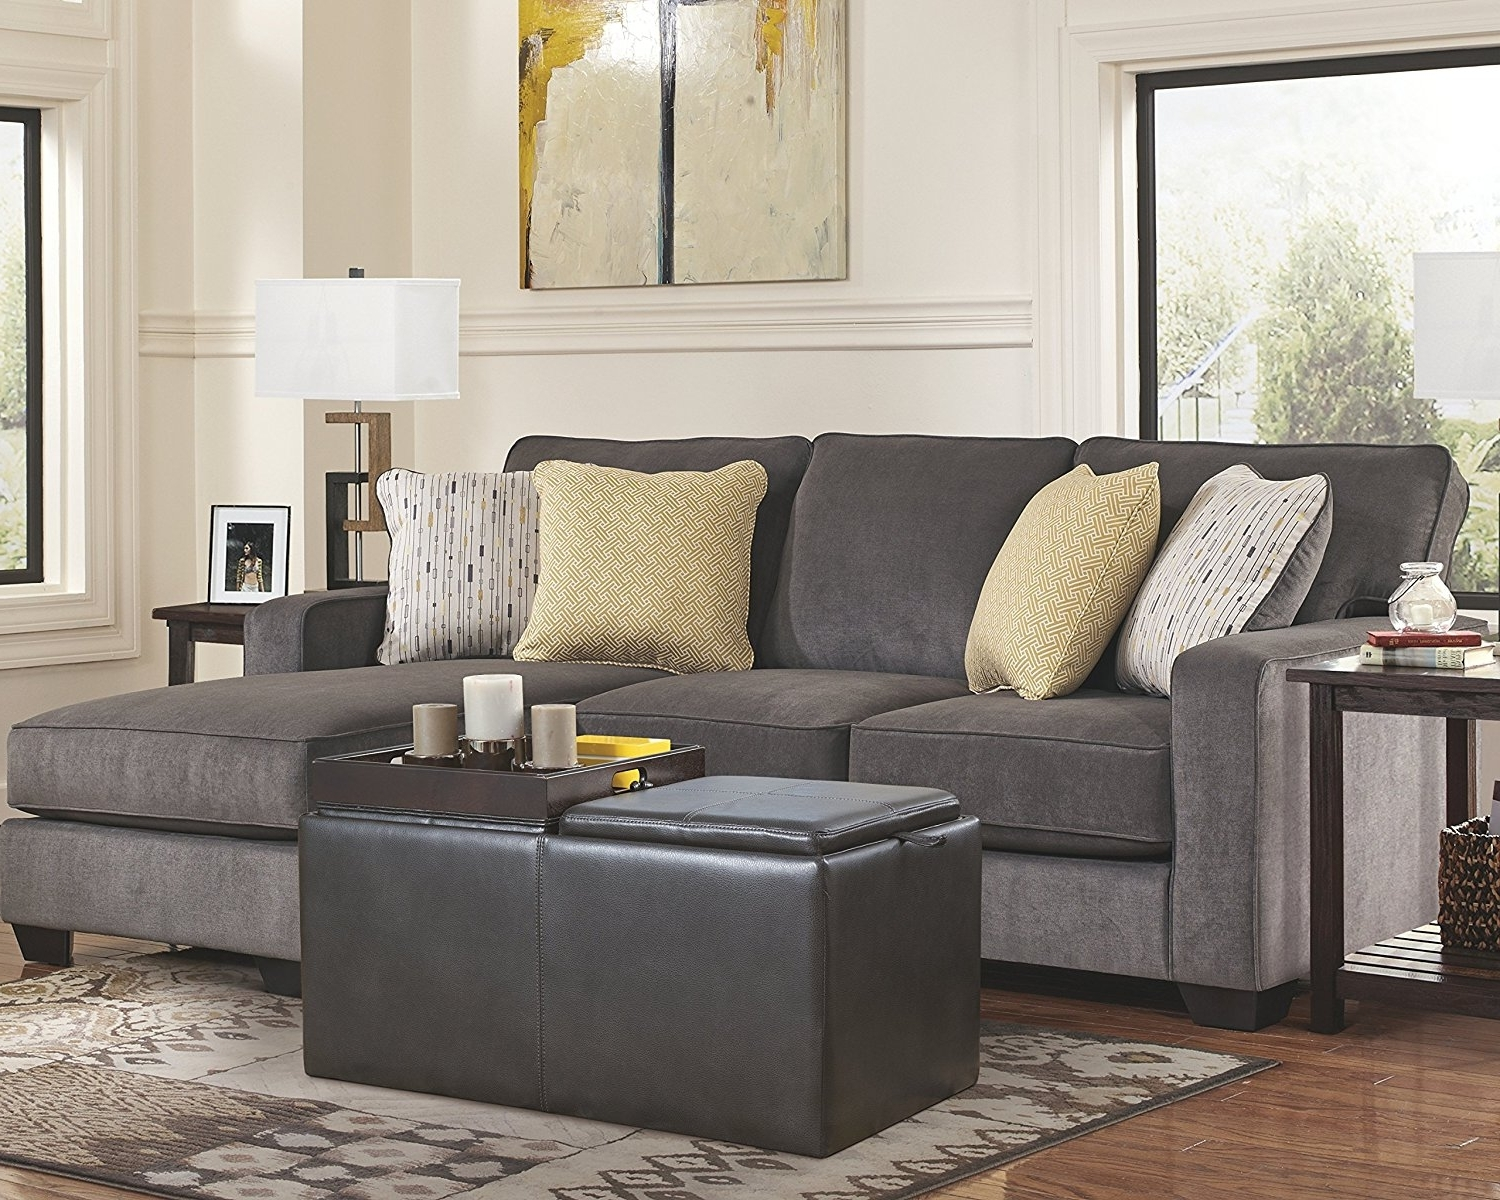 Recent Hodan Sofas With Chaise Intended For Amazon: Ashley Hodan 7970018 93 Inch Sofa Chaise With Pillows (View 8 of 15)